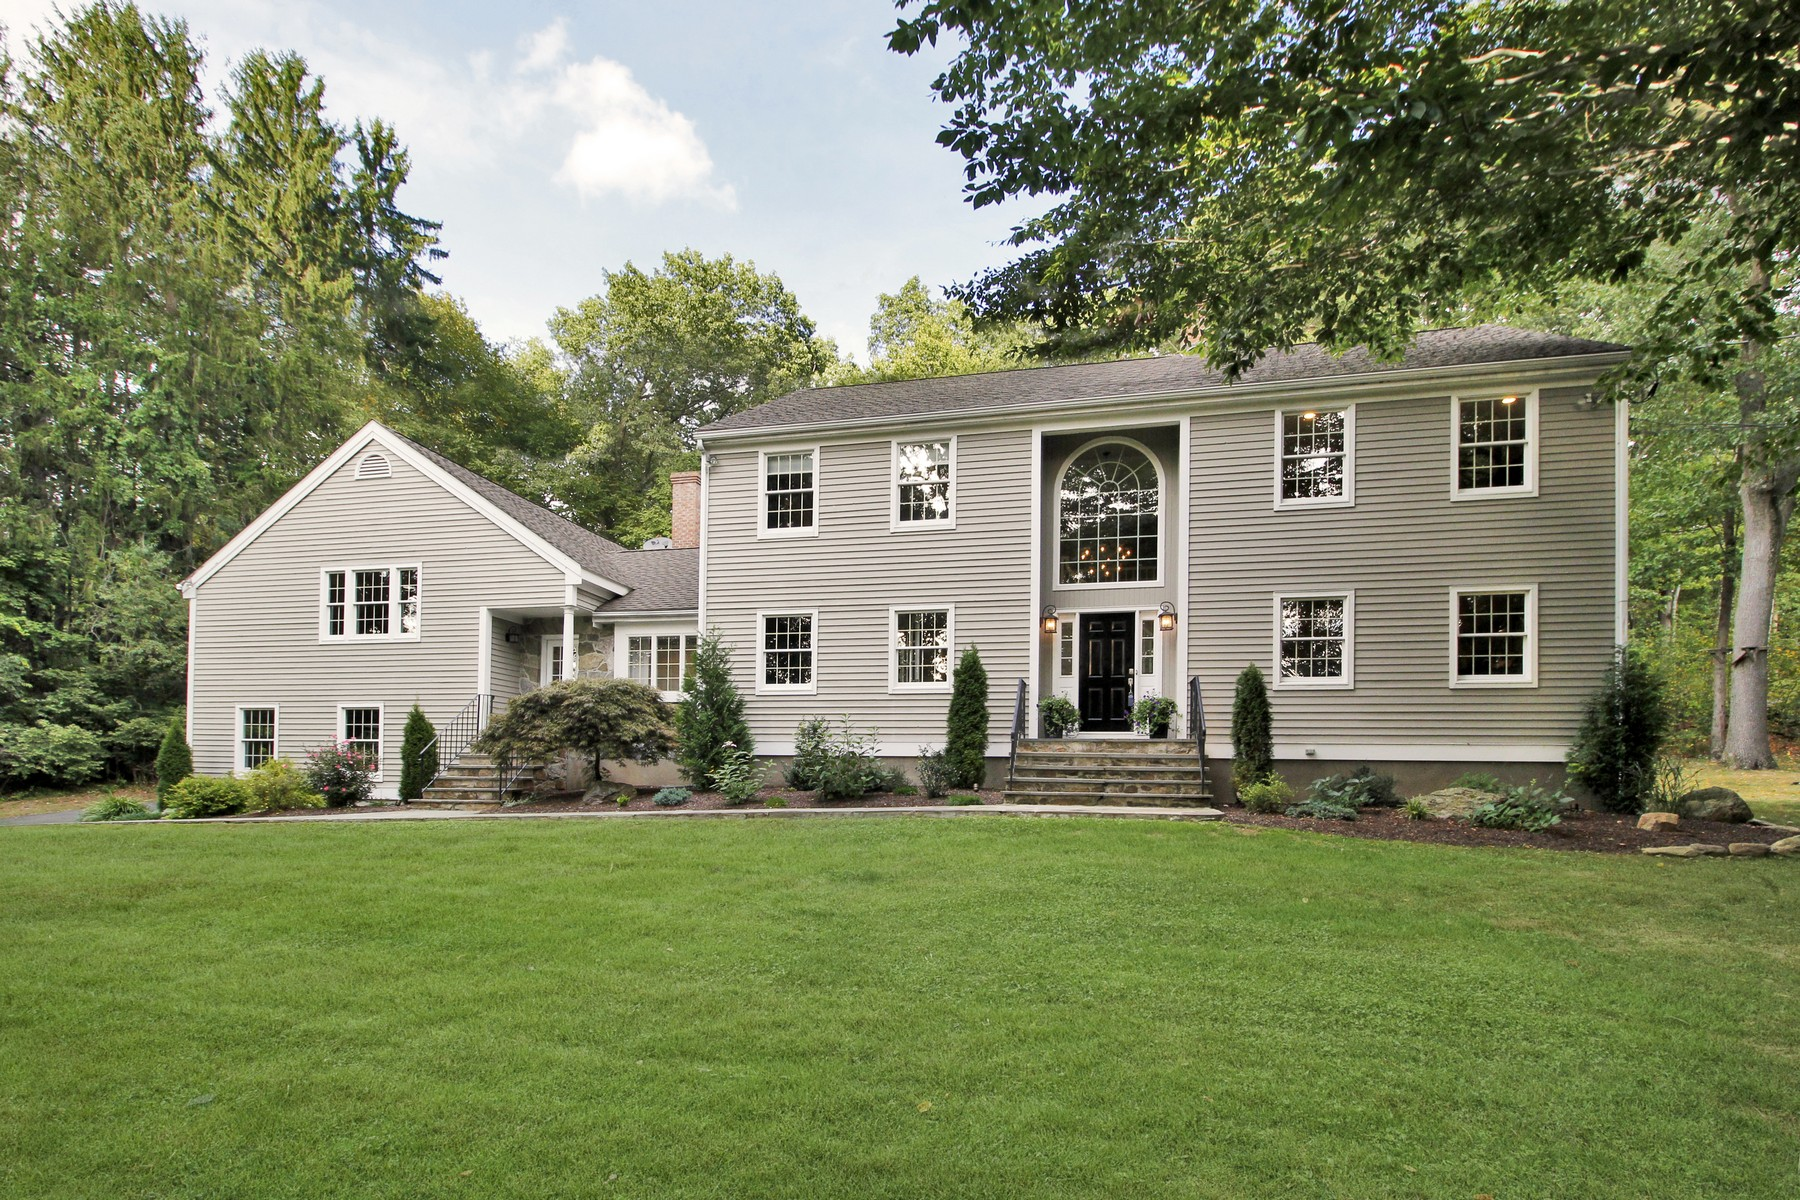 Single Family Home for Sale at Stately Expansive Colonial on Easton/Fairfield Border 15 Reilly Road Easton, Connecticut 06612 United States